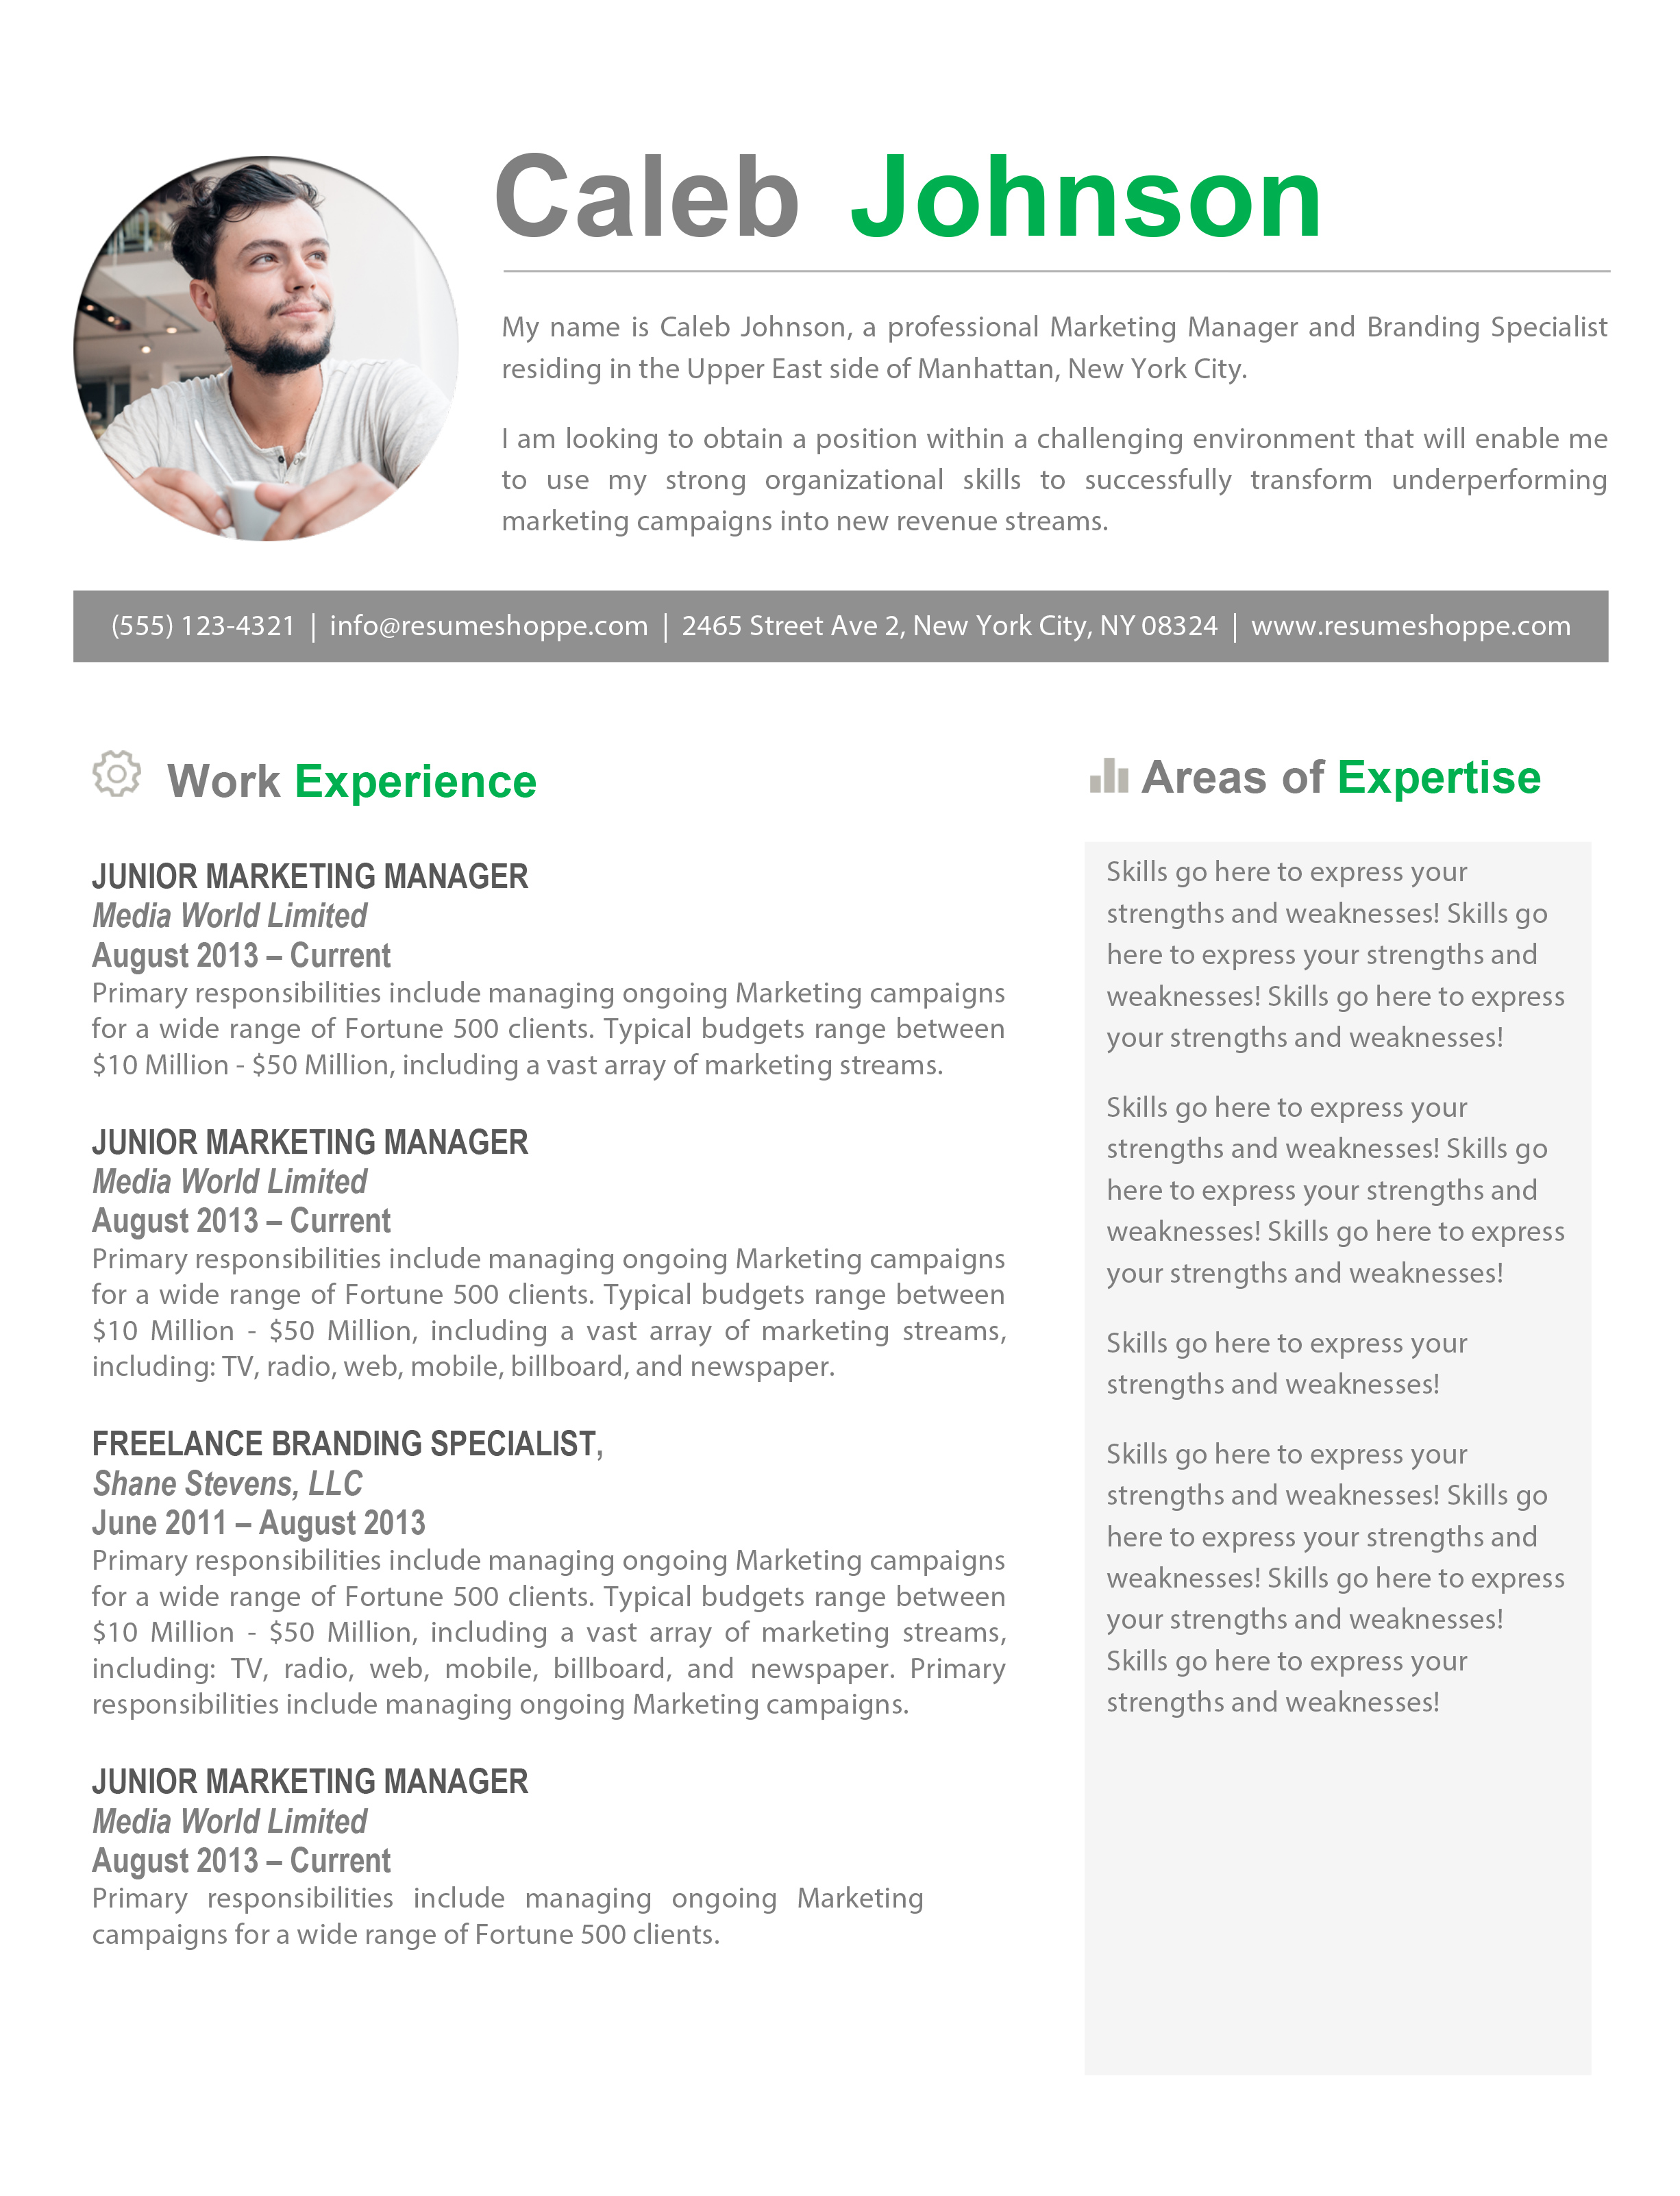 apple teacher cv template microsoft - Free Resume Templates For Pages